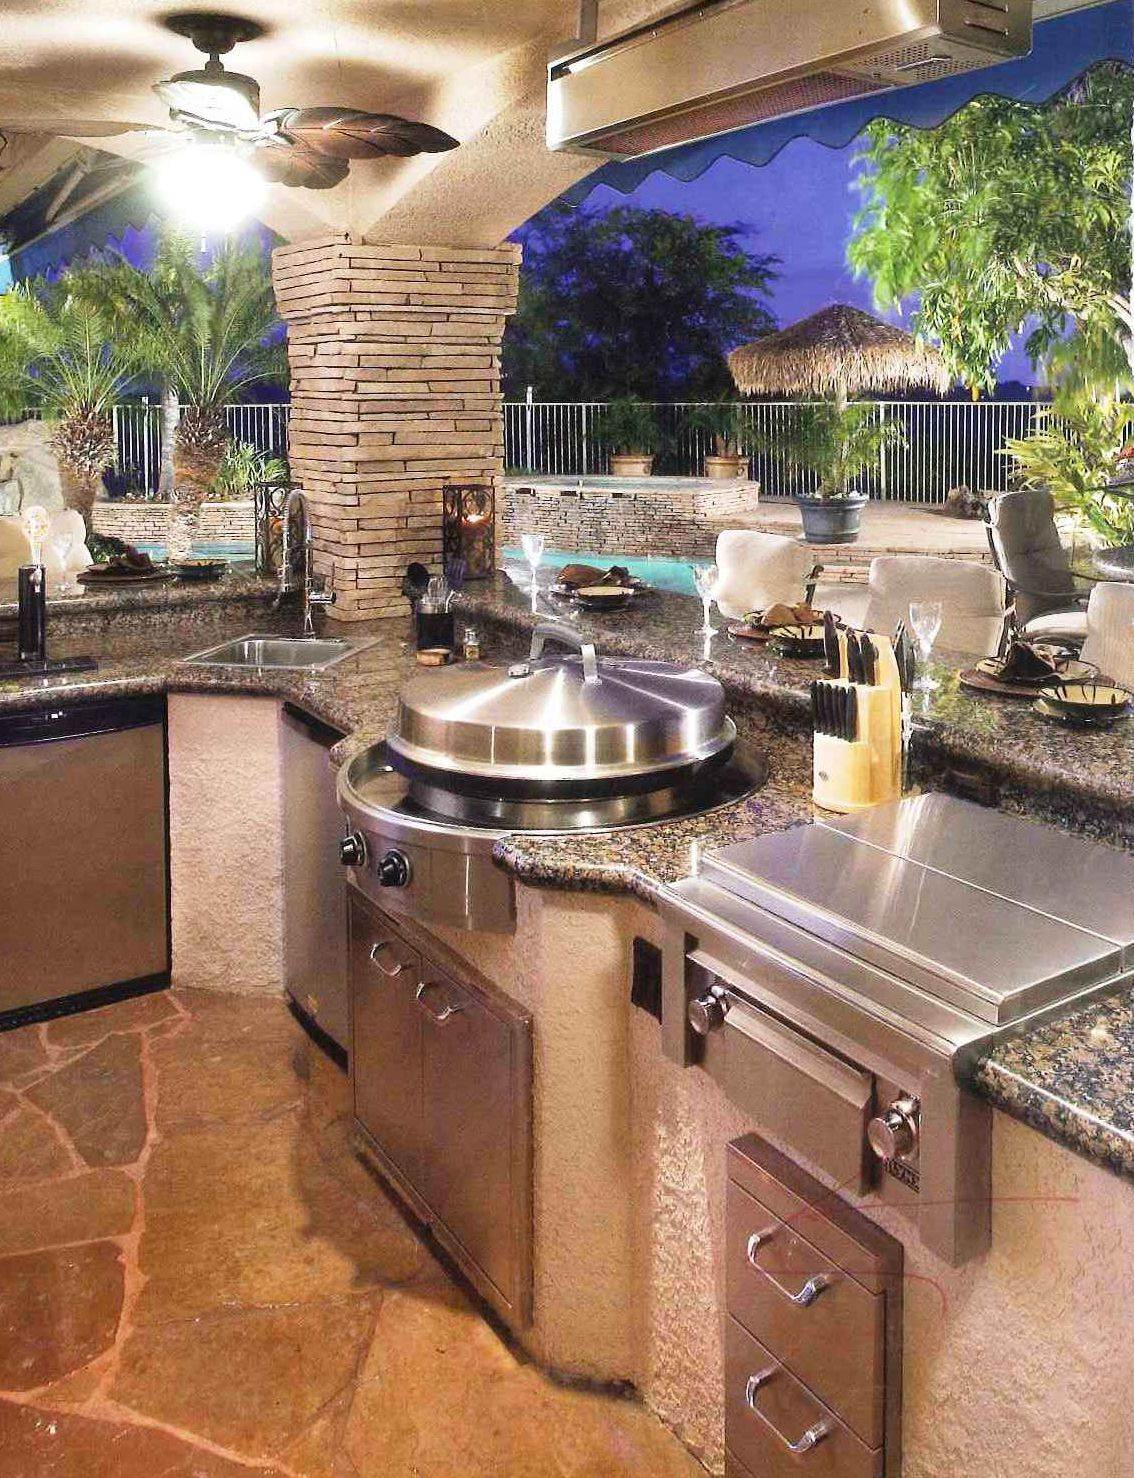 Outdoor Kitchens 70 Awesomely Clever Ideas For Outdoor Kitchen Designs Backyards